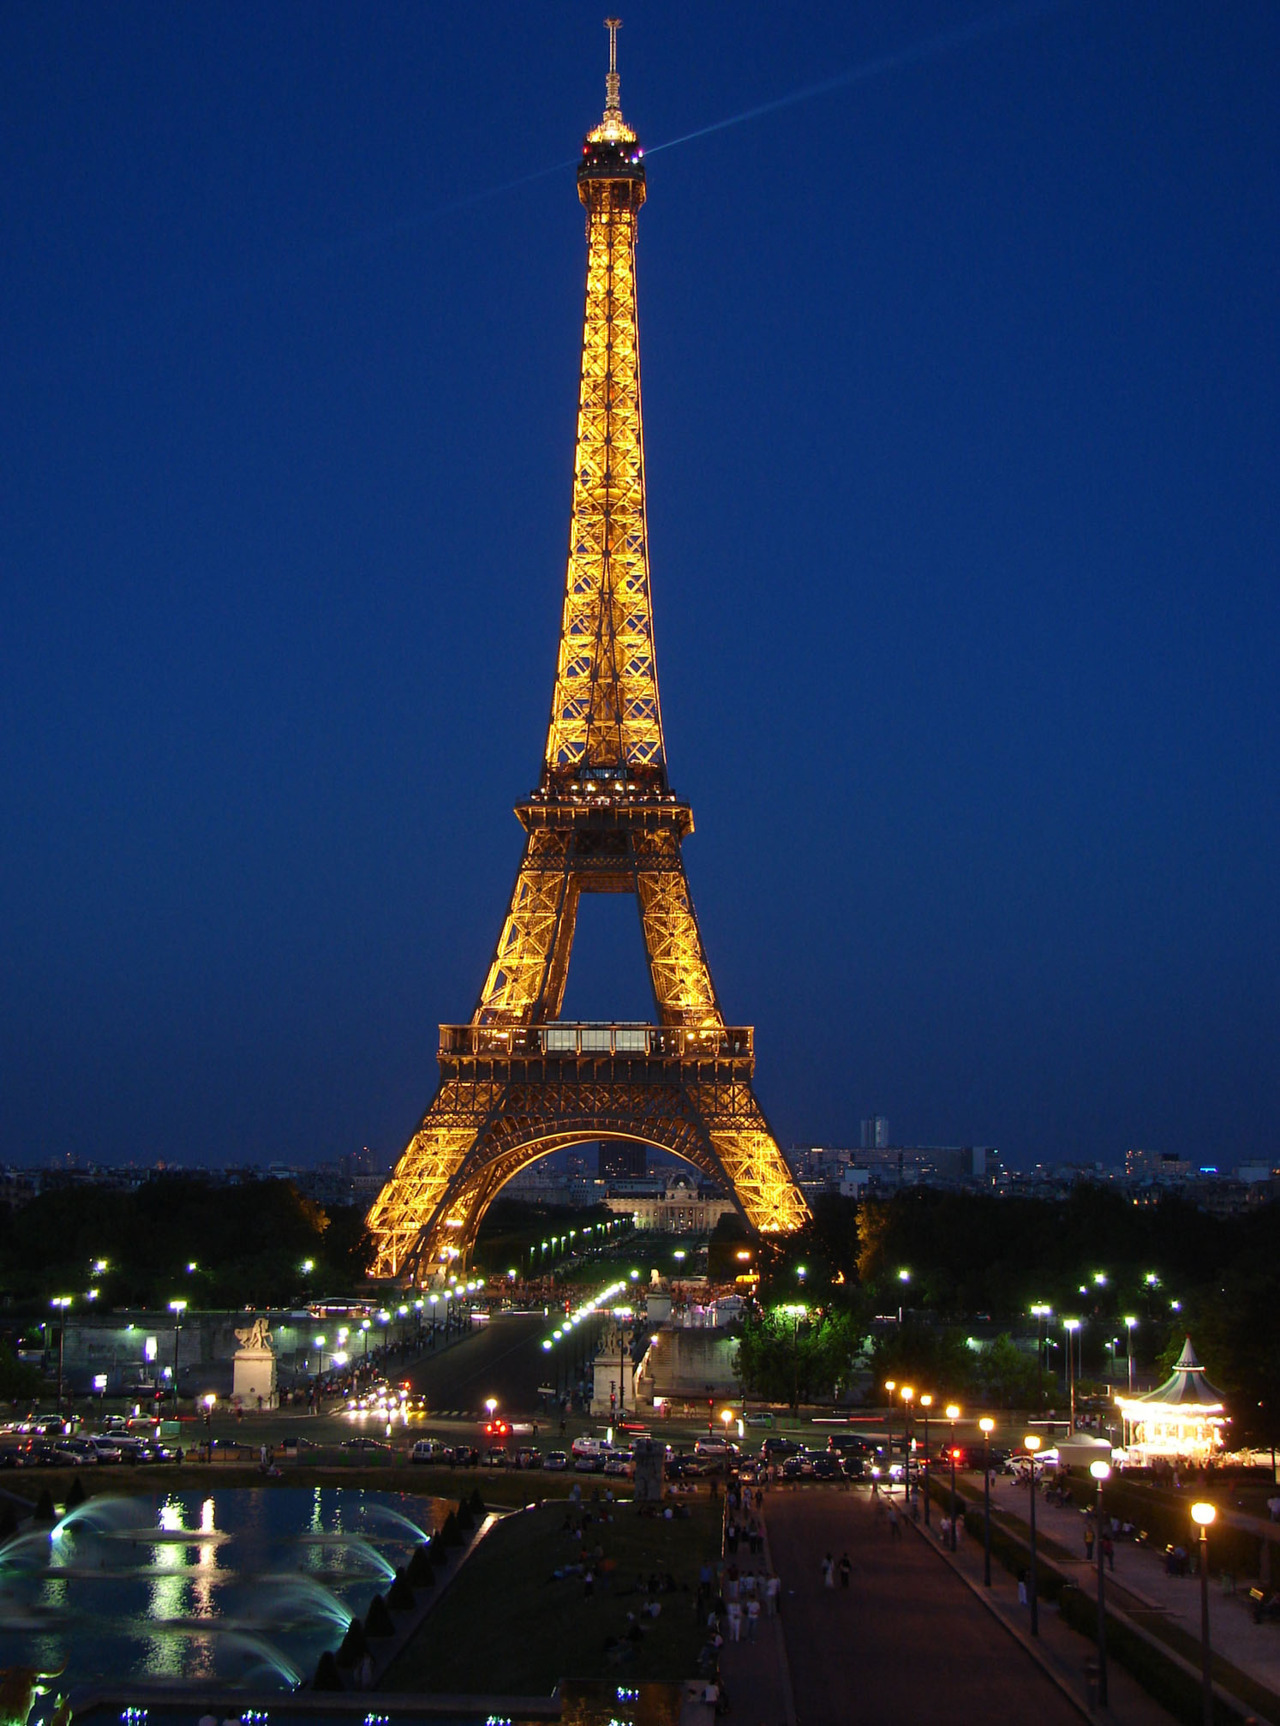 Eiffel Tower, Paris  ♥ ♥ ♥ ♥